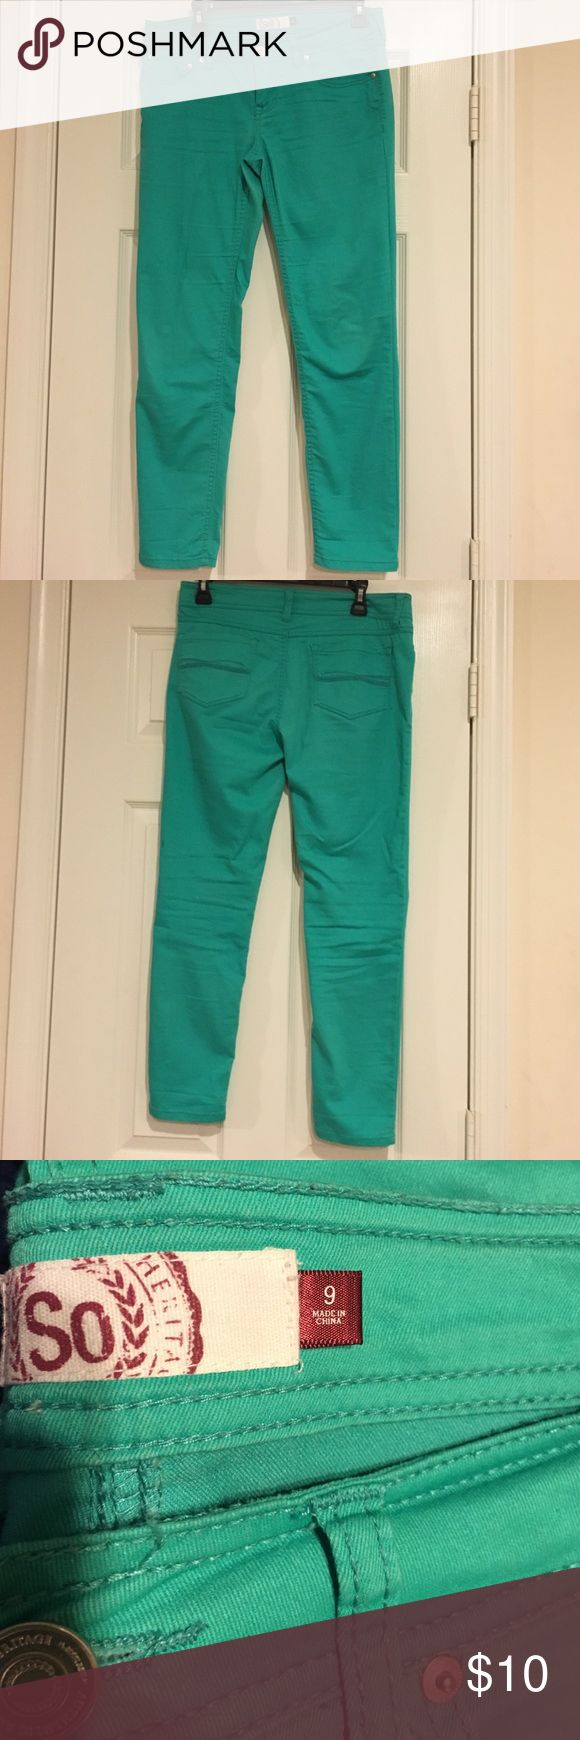 So Jean mint green pants Juniors size 9 SO Pants Ankle & Cropped